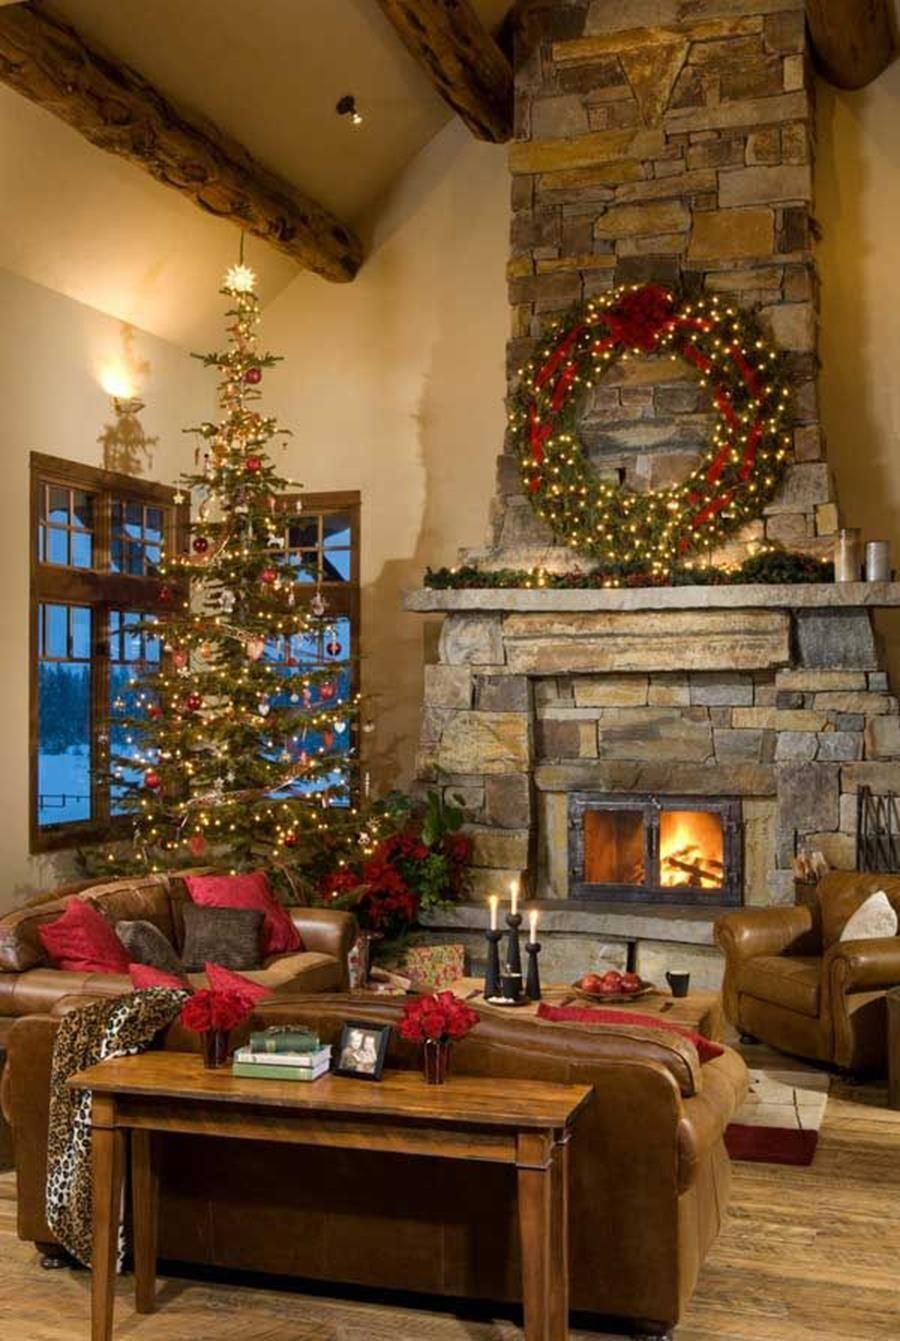 50 Stunning Living Room Christmas Decorating Ideas 32 Chris